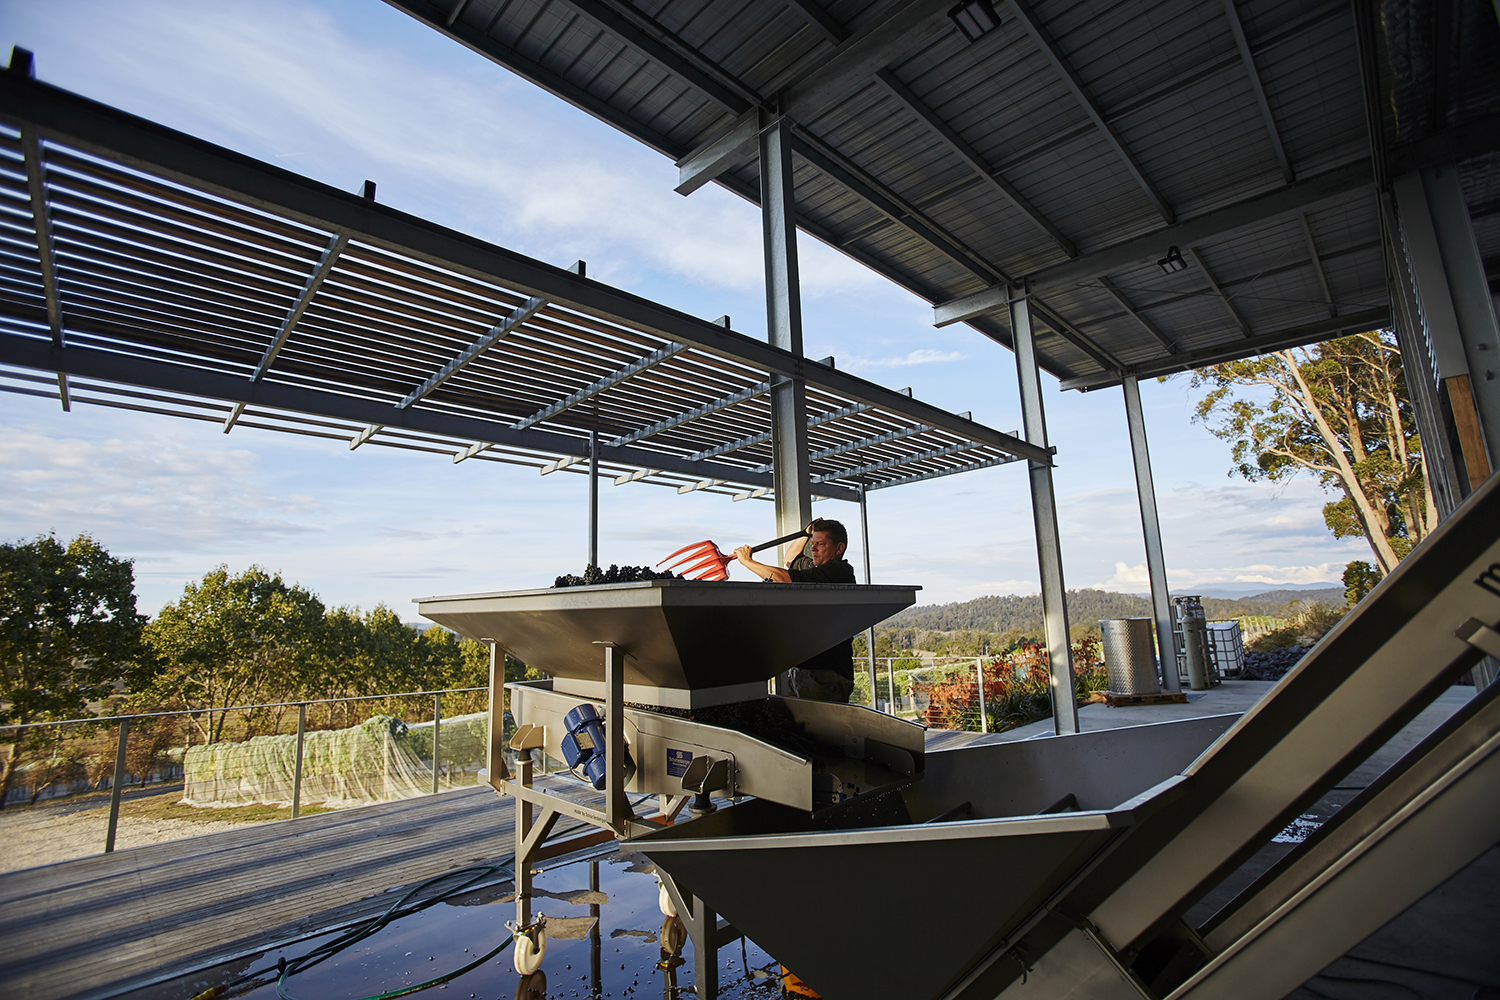 Winemaker Julian Allport at work in our solar powered winery